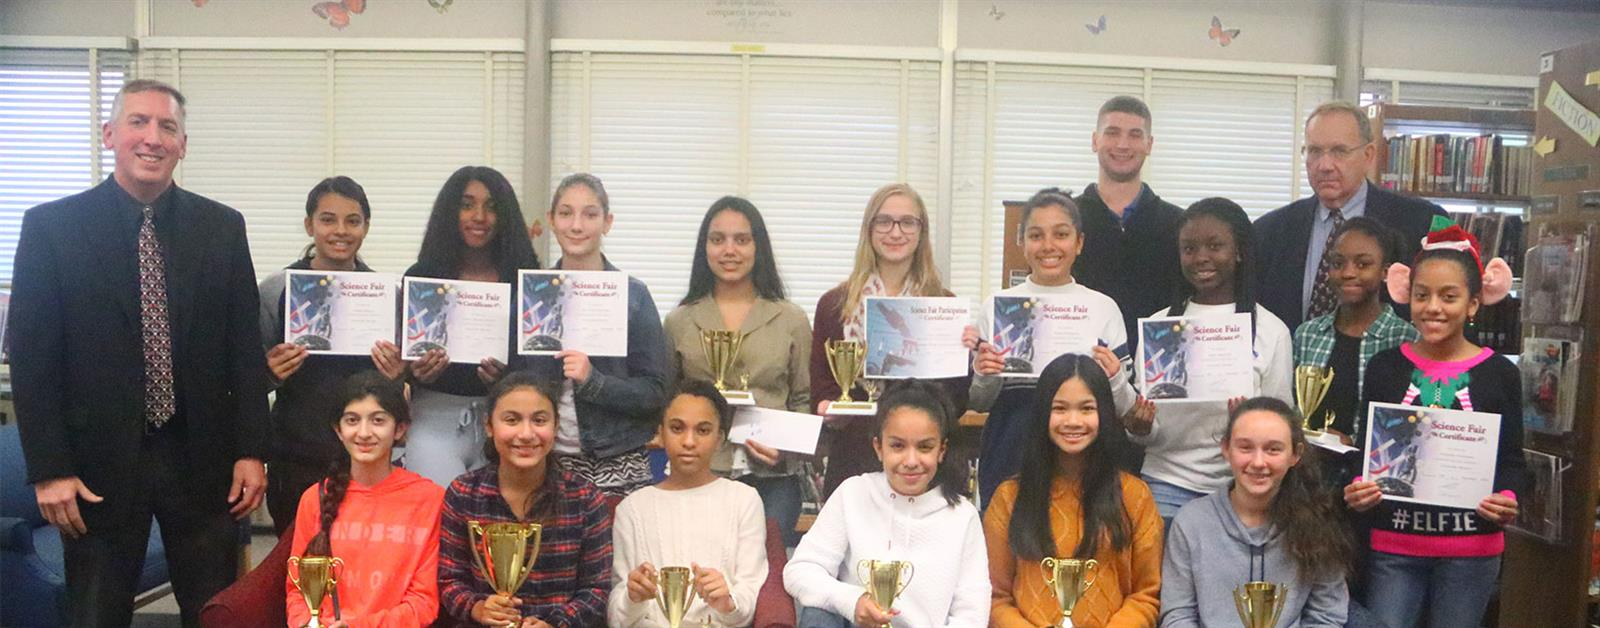 Budding Scientists Show Off Their Skills photo